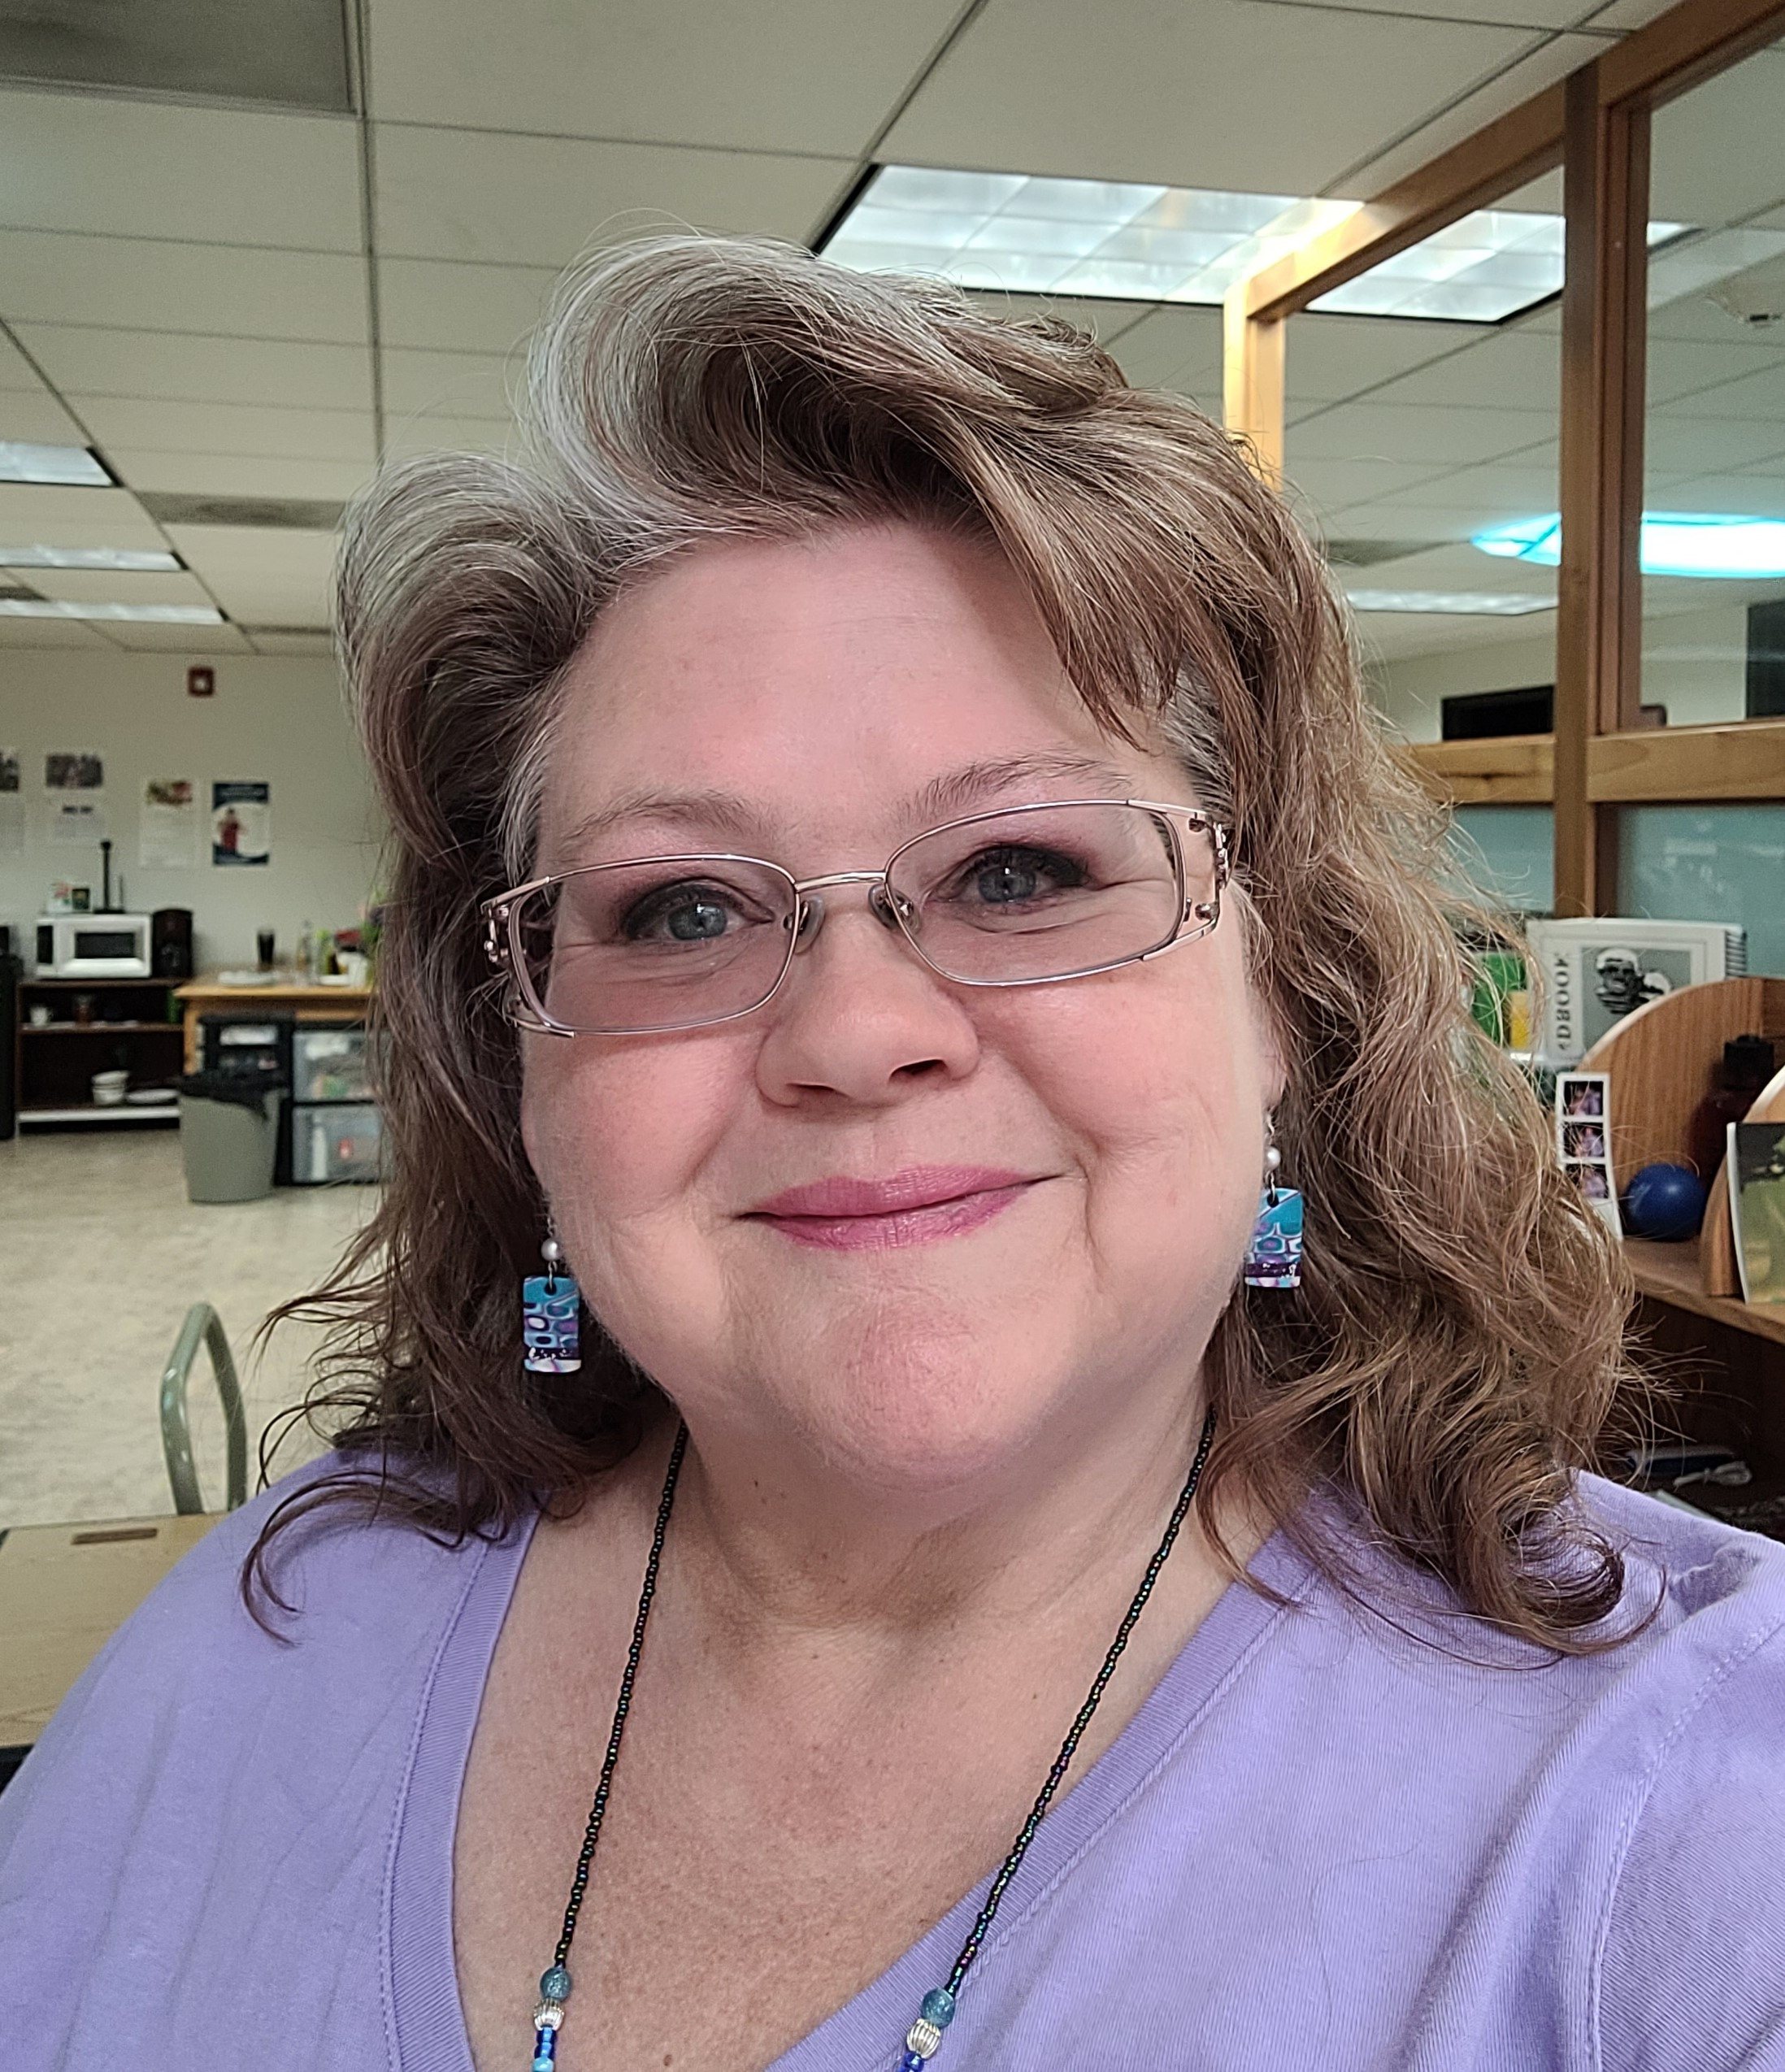 Photo of Program Manager Tracy Agiovlasitis wearing glasses, a purple top, and colorful blue earrings